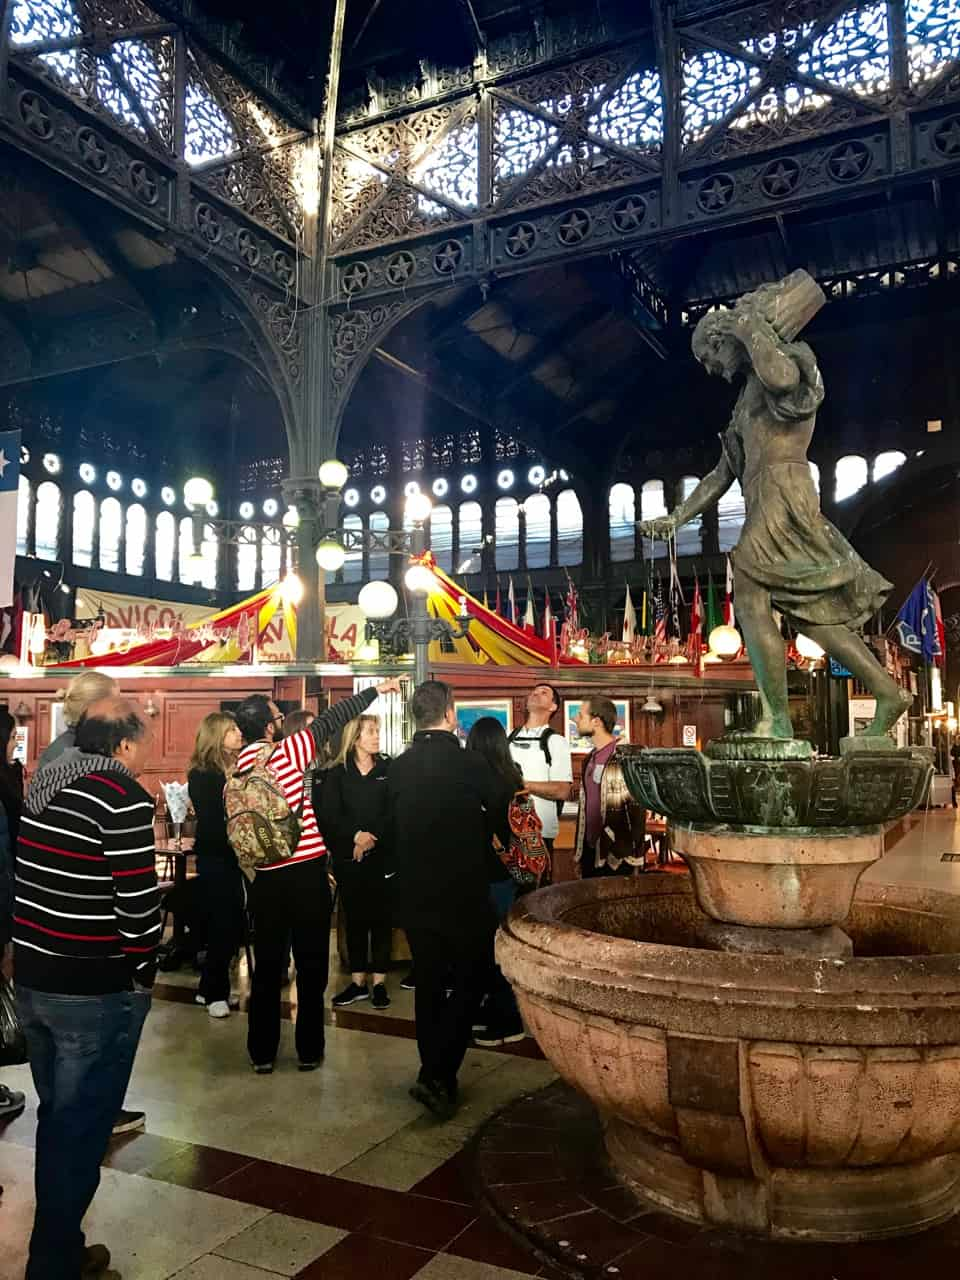 Things to do in Santiago - A Tours4Tips group learns about the Mercado Central in Santiago